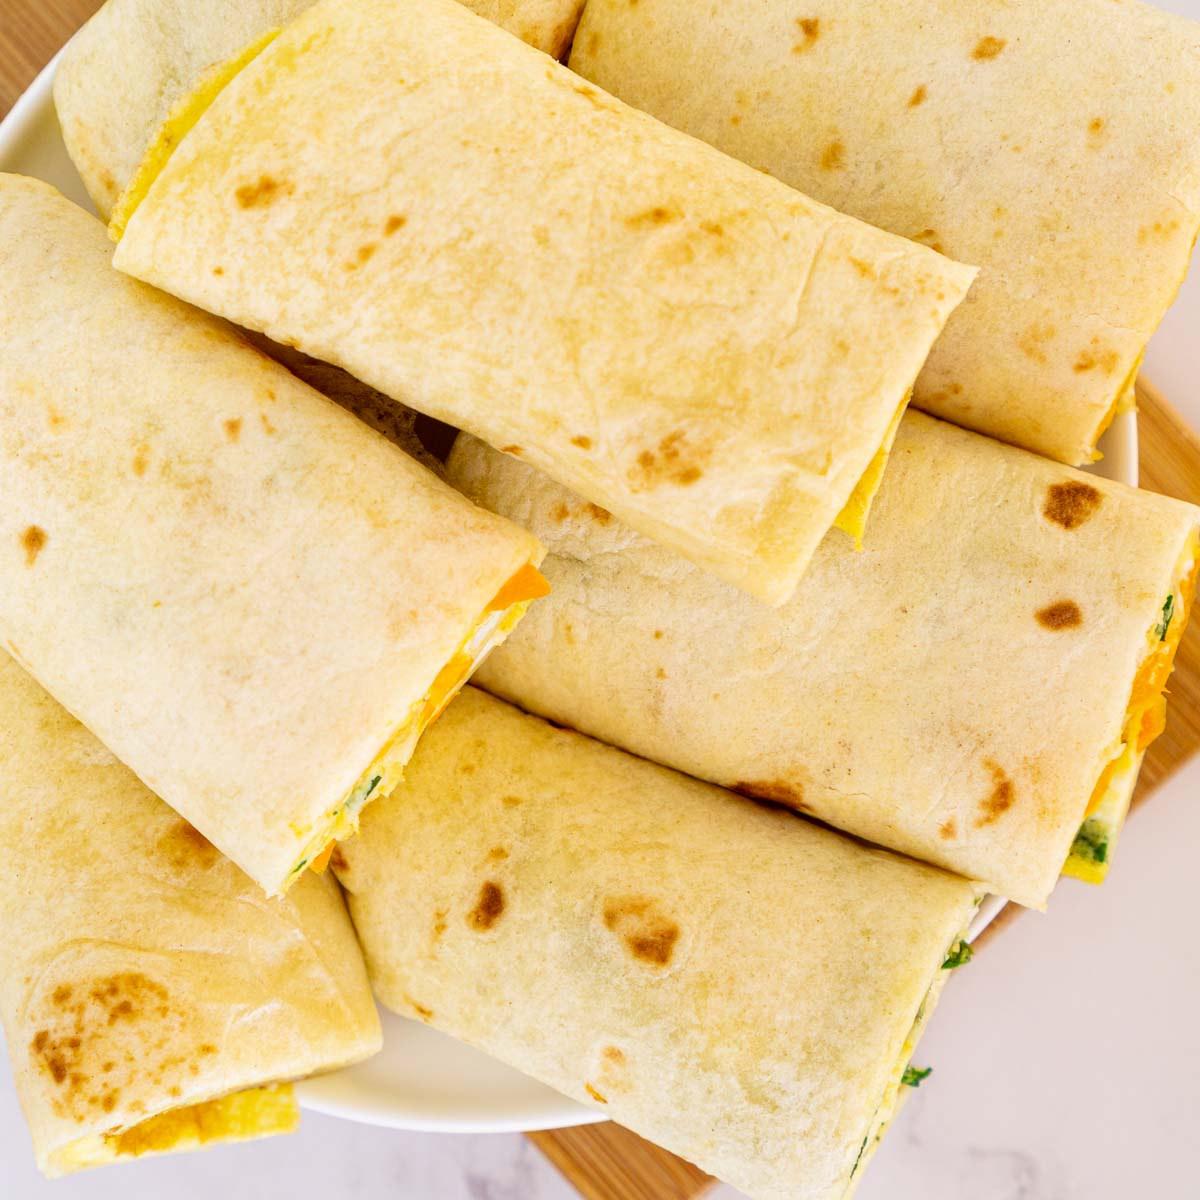 Tortilla egg wraps on a plate.